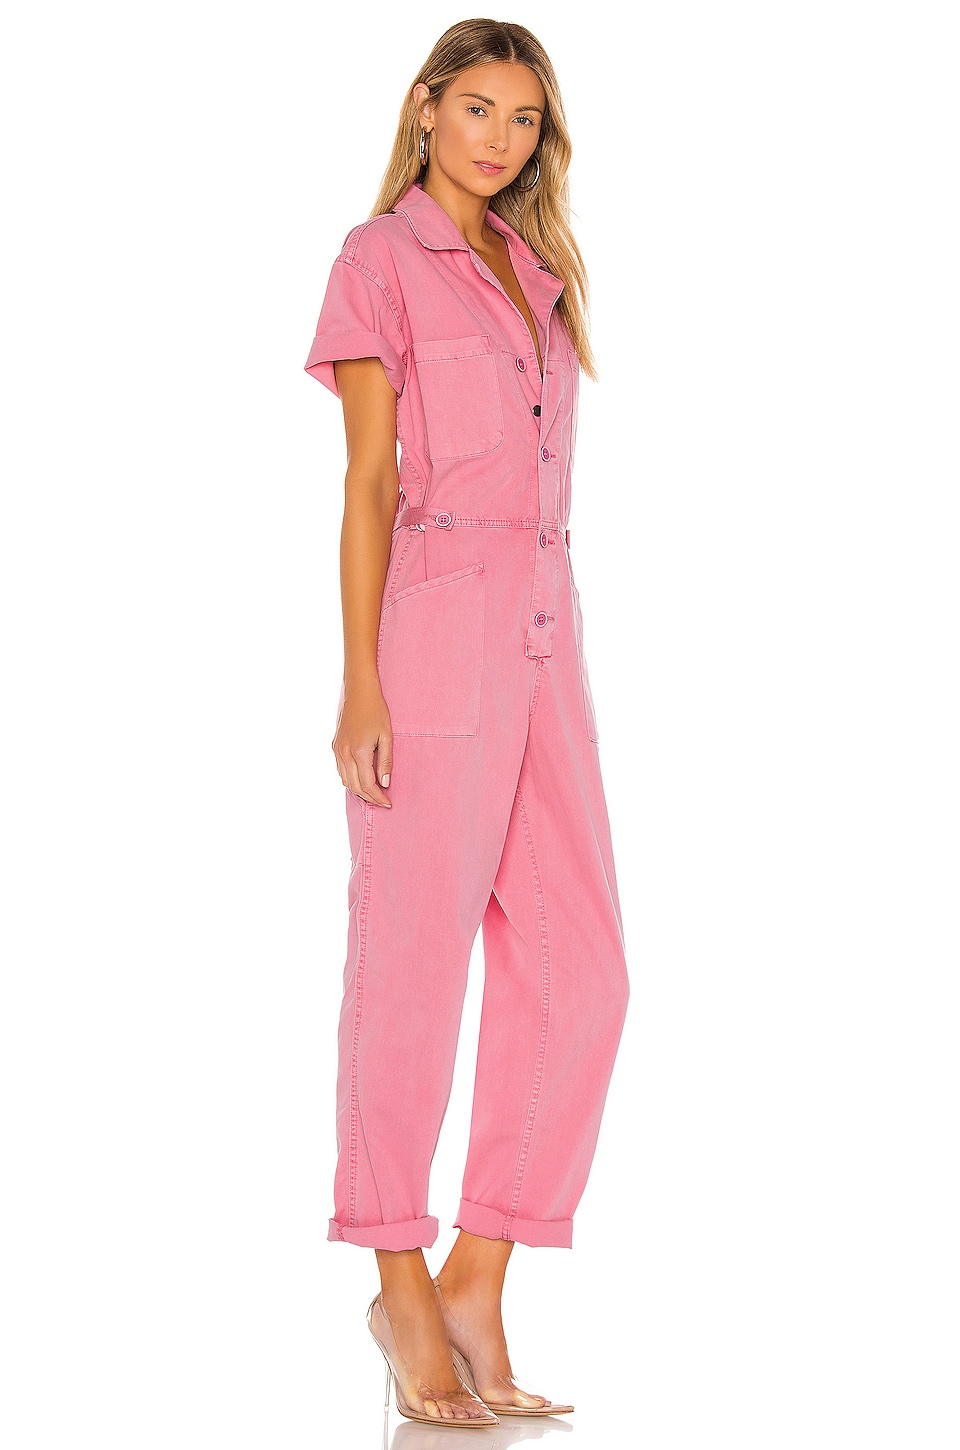 Grover Jumpsuit, view 2, click to view large image.